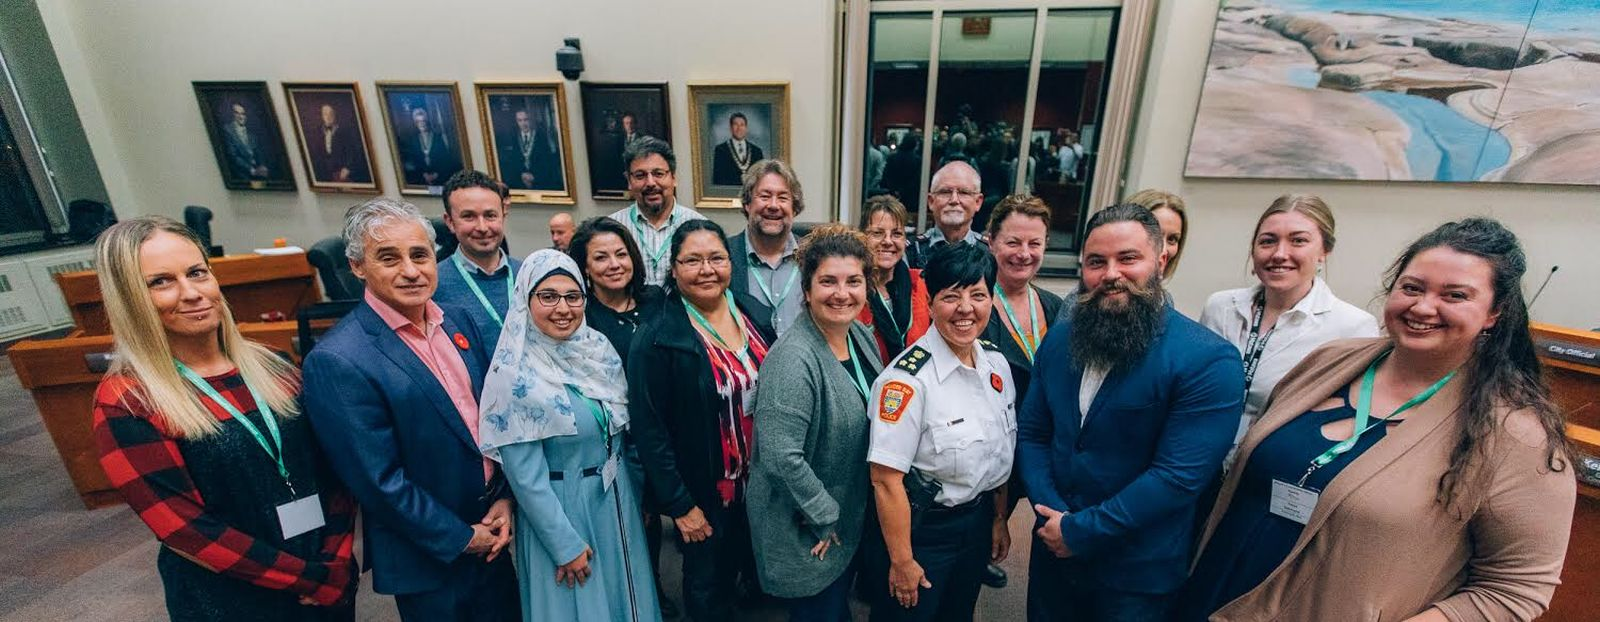 photos of Mayor's Community Safety Awards